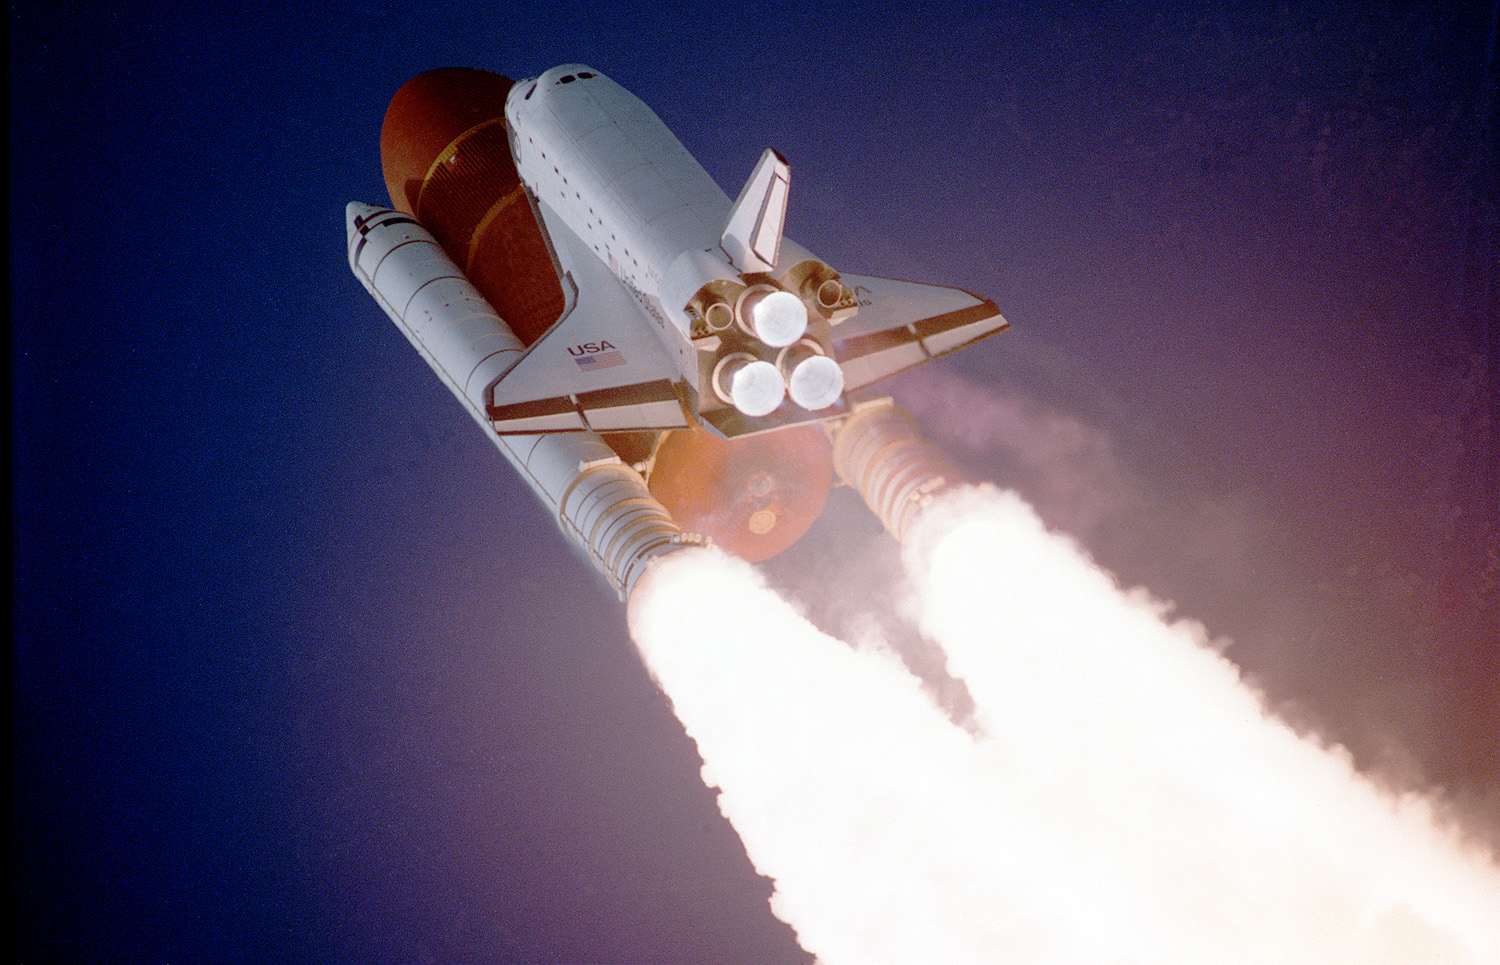 10. Atlantis Lifts Off on STS-27